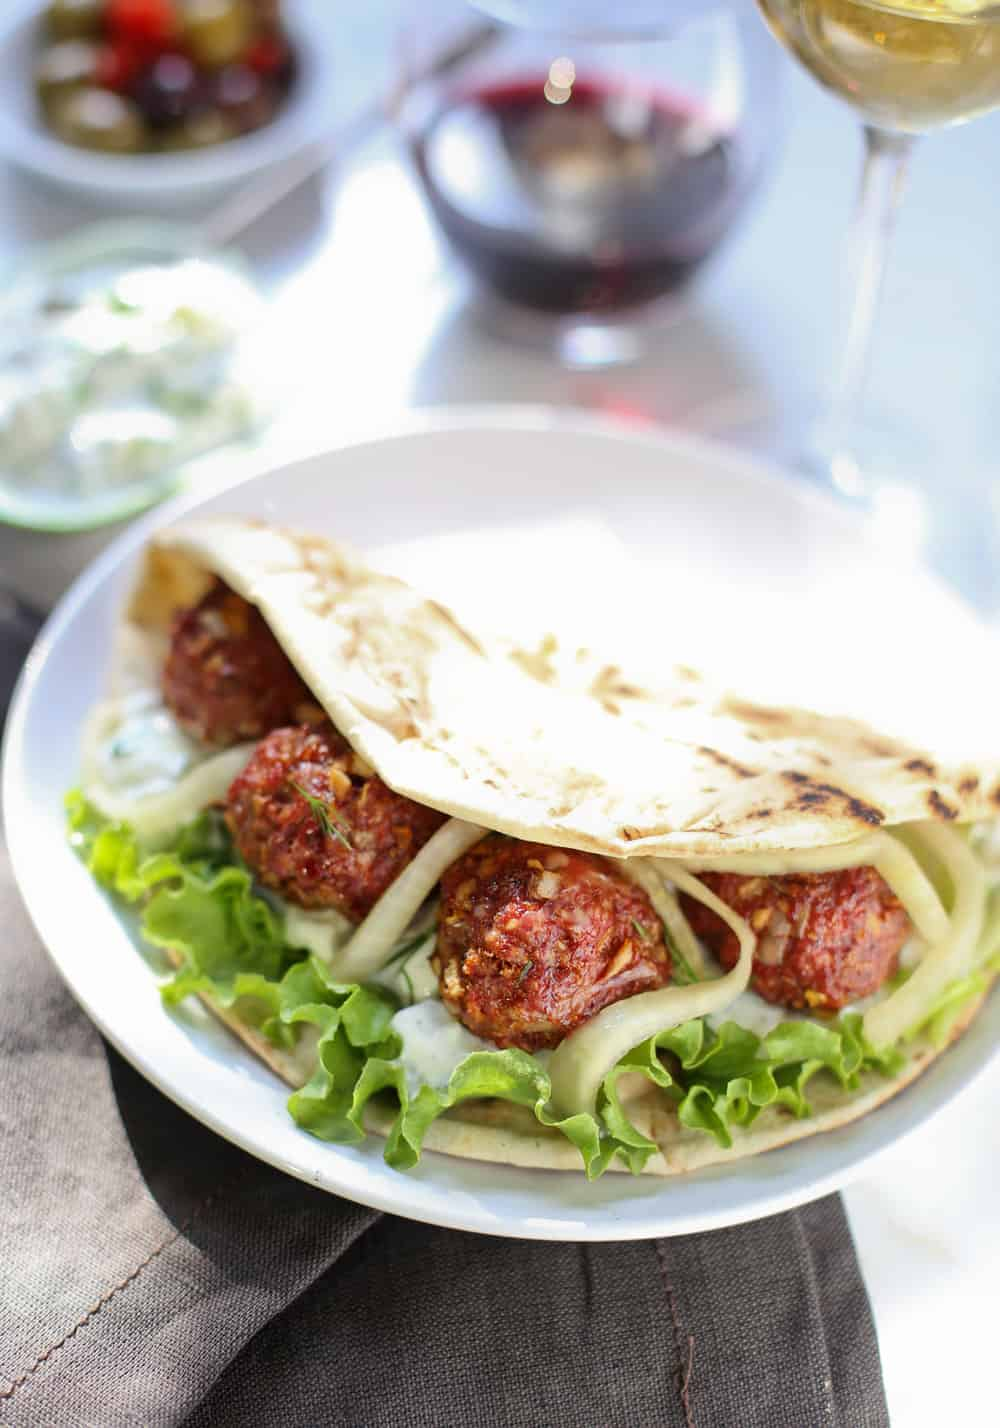 Smoked Lamb Meatball Pita Sandwiches. An incredible way to add flavor to any pita sandwich.